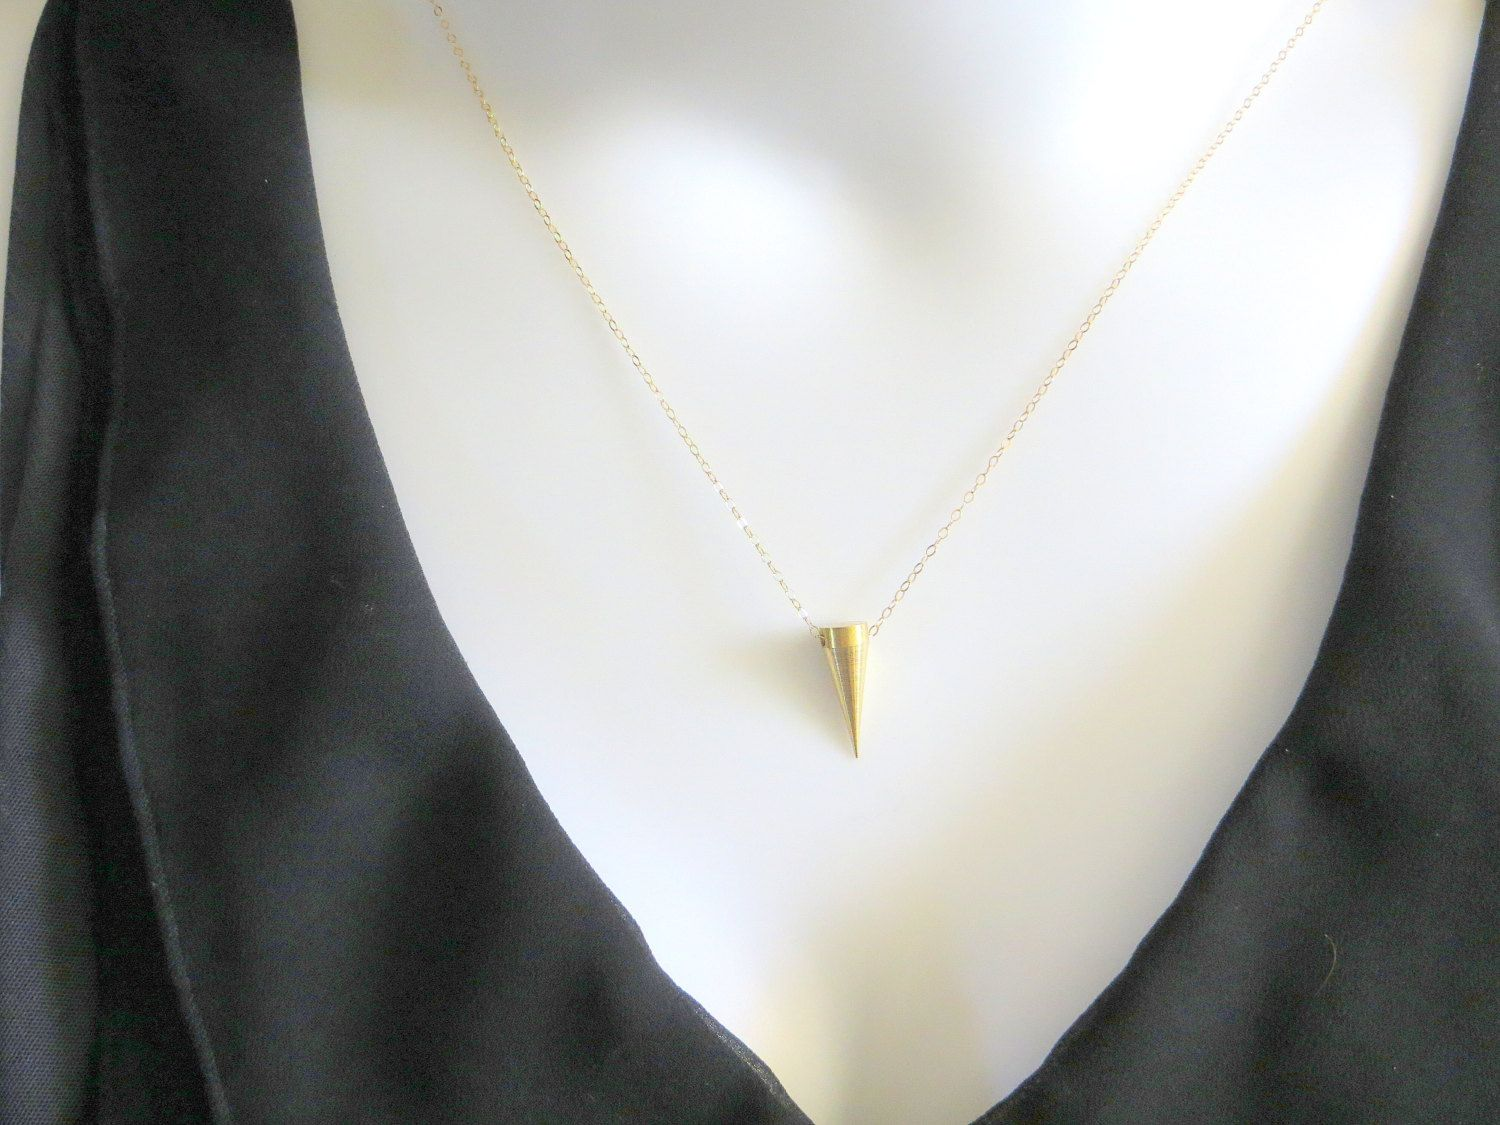 Gold+Filled+Spike+Pendant+Necklace+by+Maddiecatandme+on+Etsy